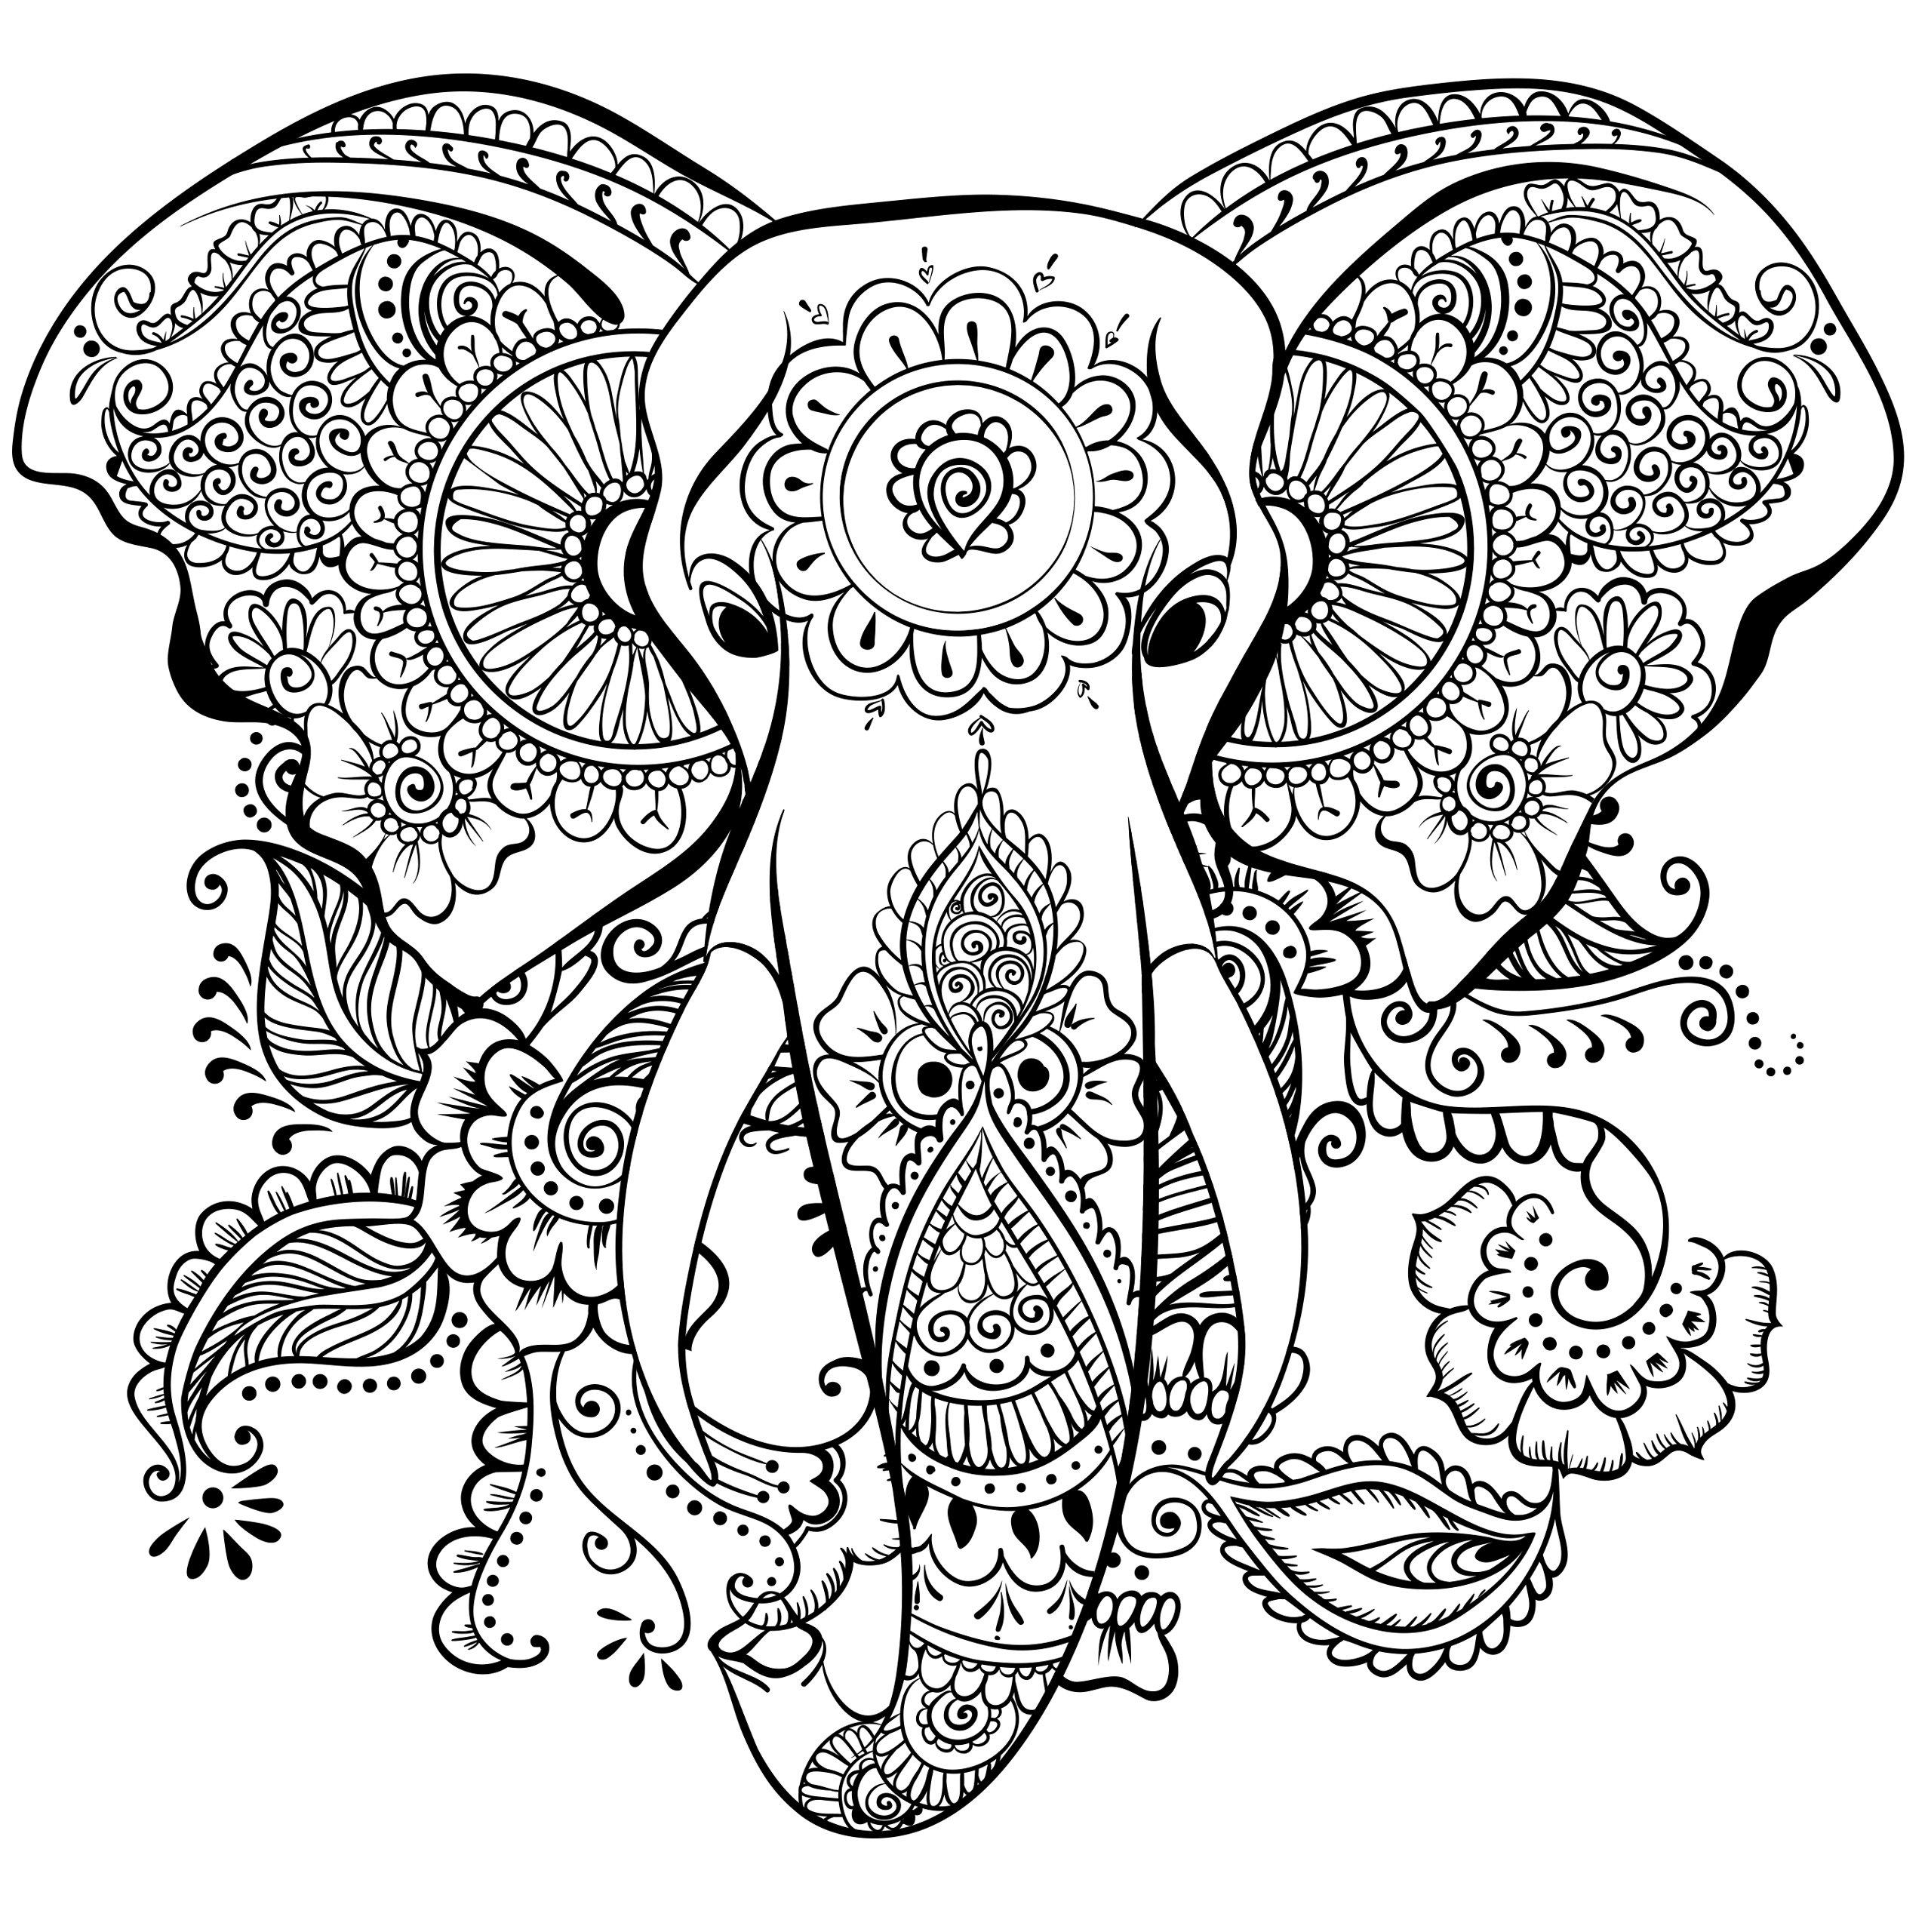 2555x2560 Simple Stress Relief Coloring Pages Simple Colorings